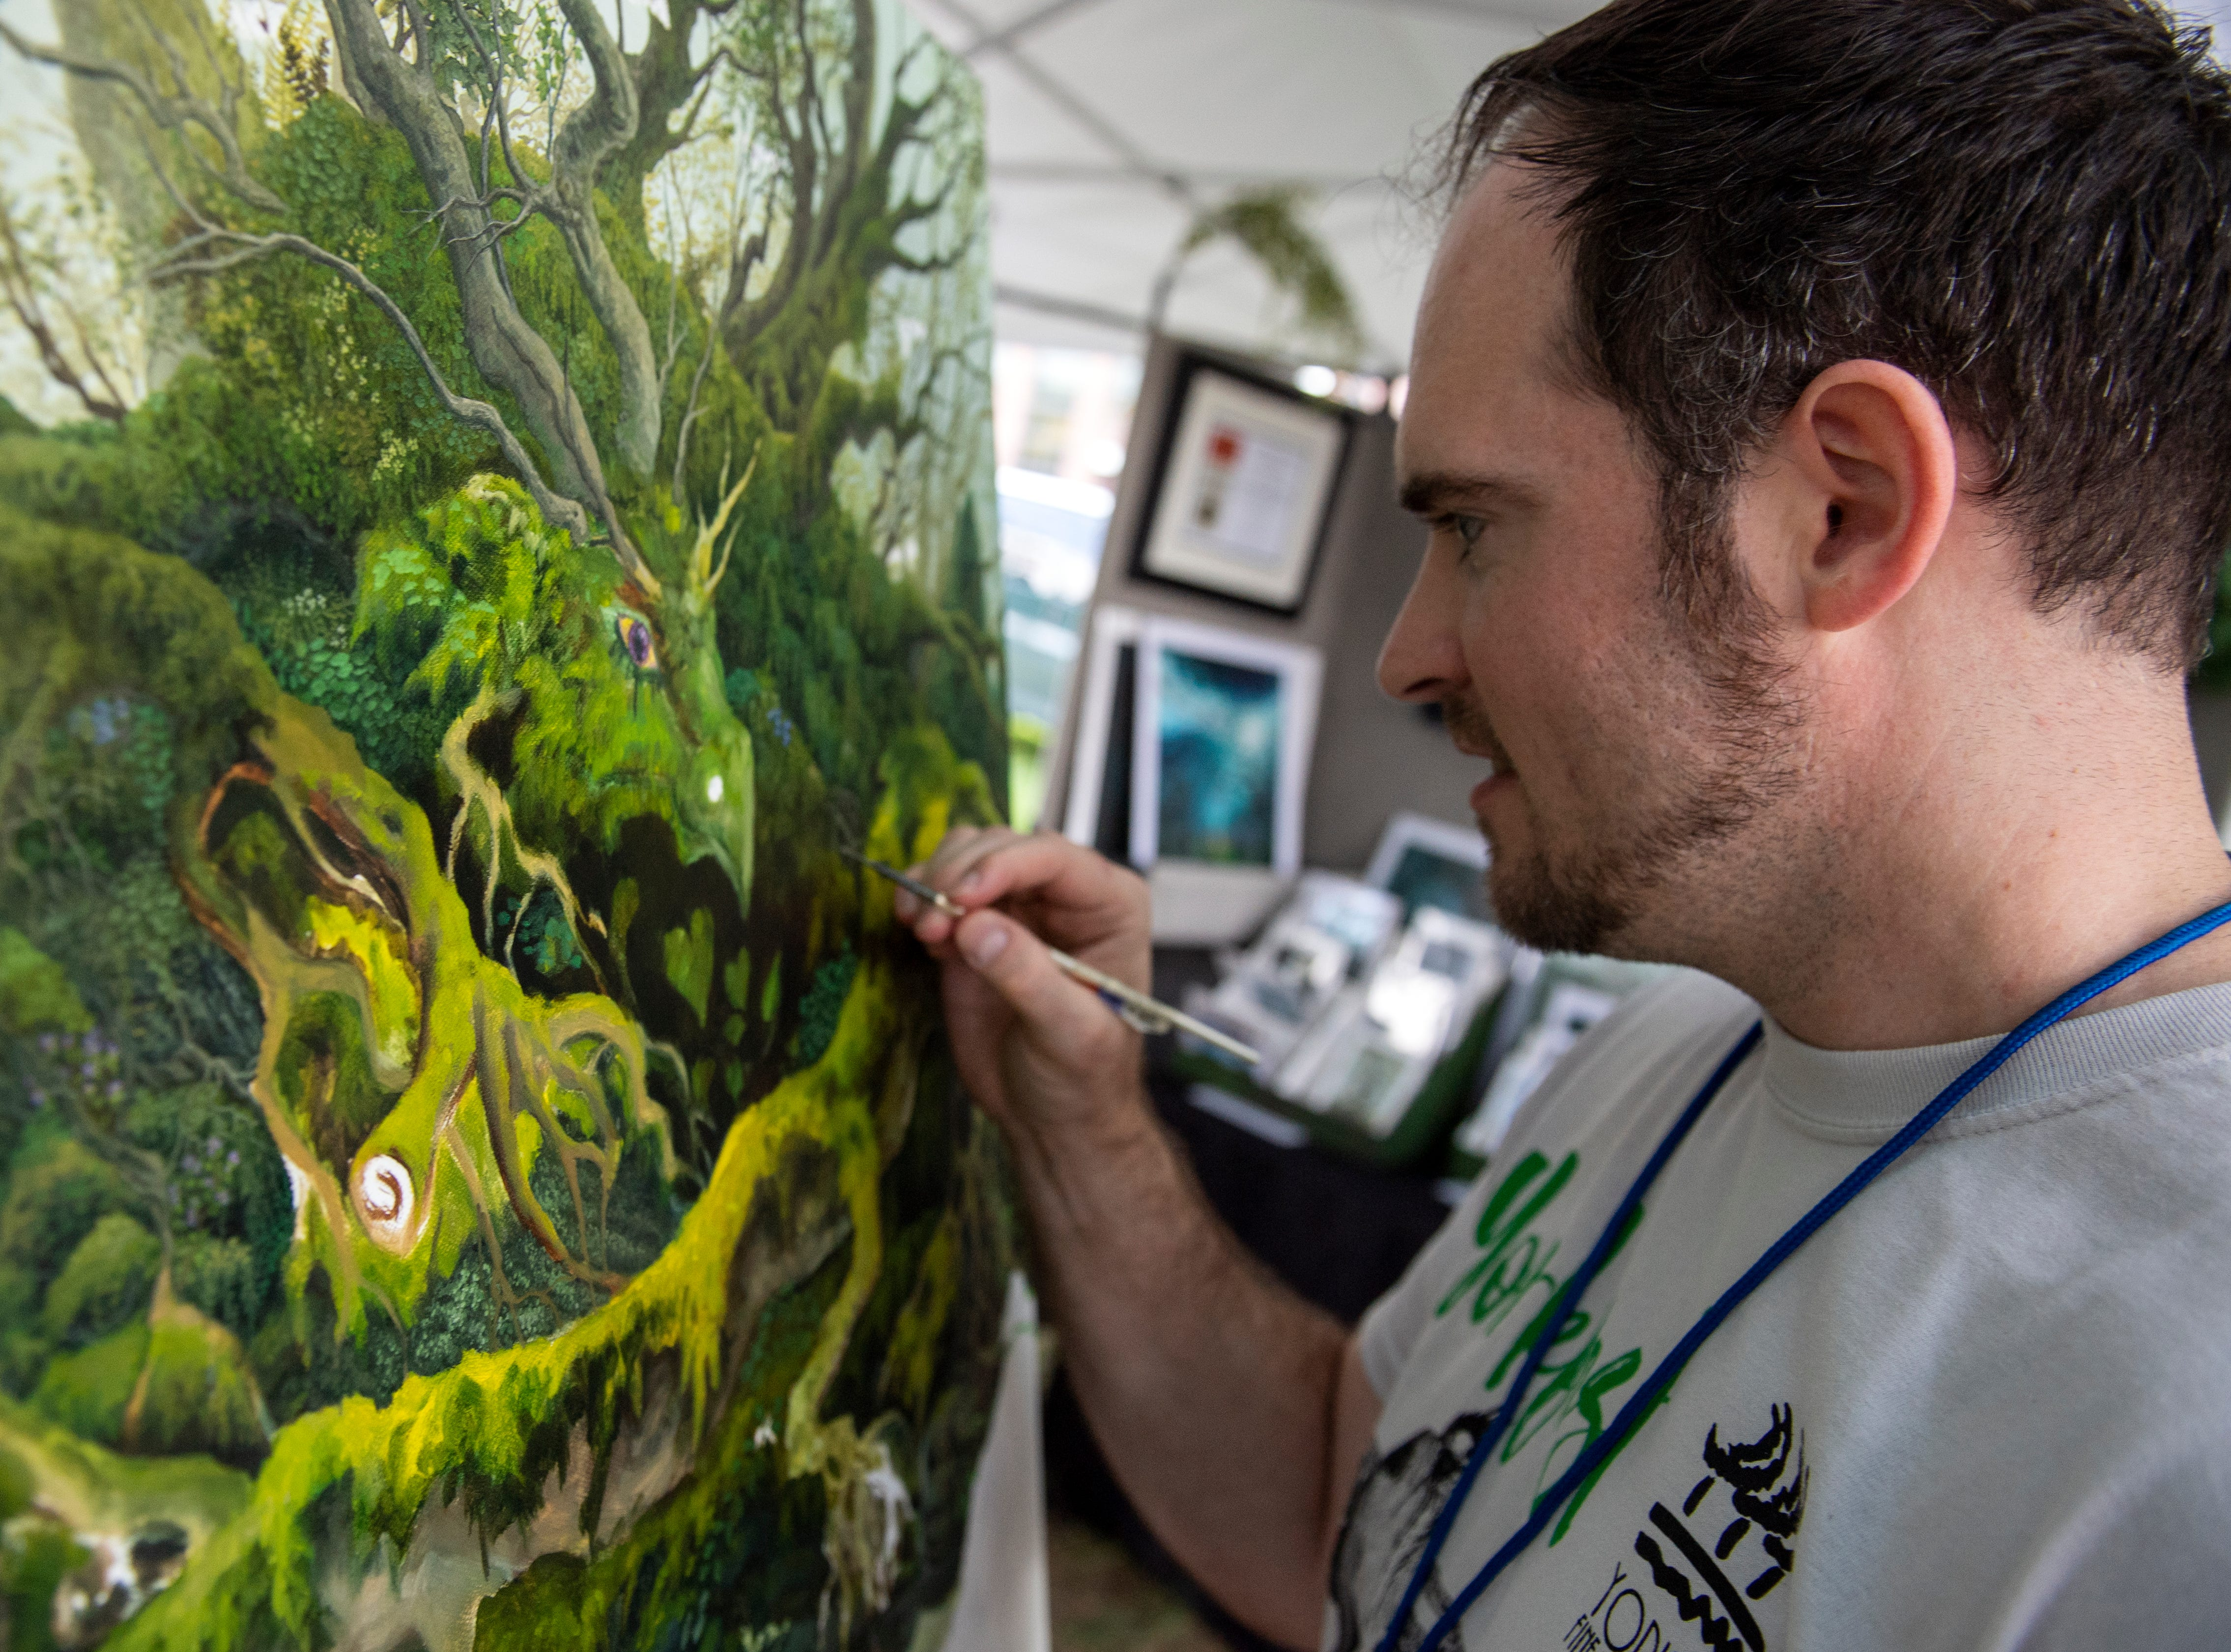 Jonathan Carrier, of Camp Hill, works on a painting outside his booth at Yorkfest, Saturday, Aug. 25, 2018. The art festival continues through Sunday, hosting over 100 artists along the Codorus Creek.